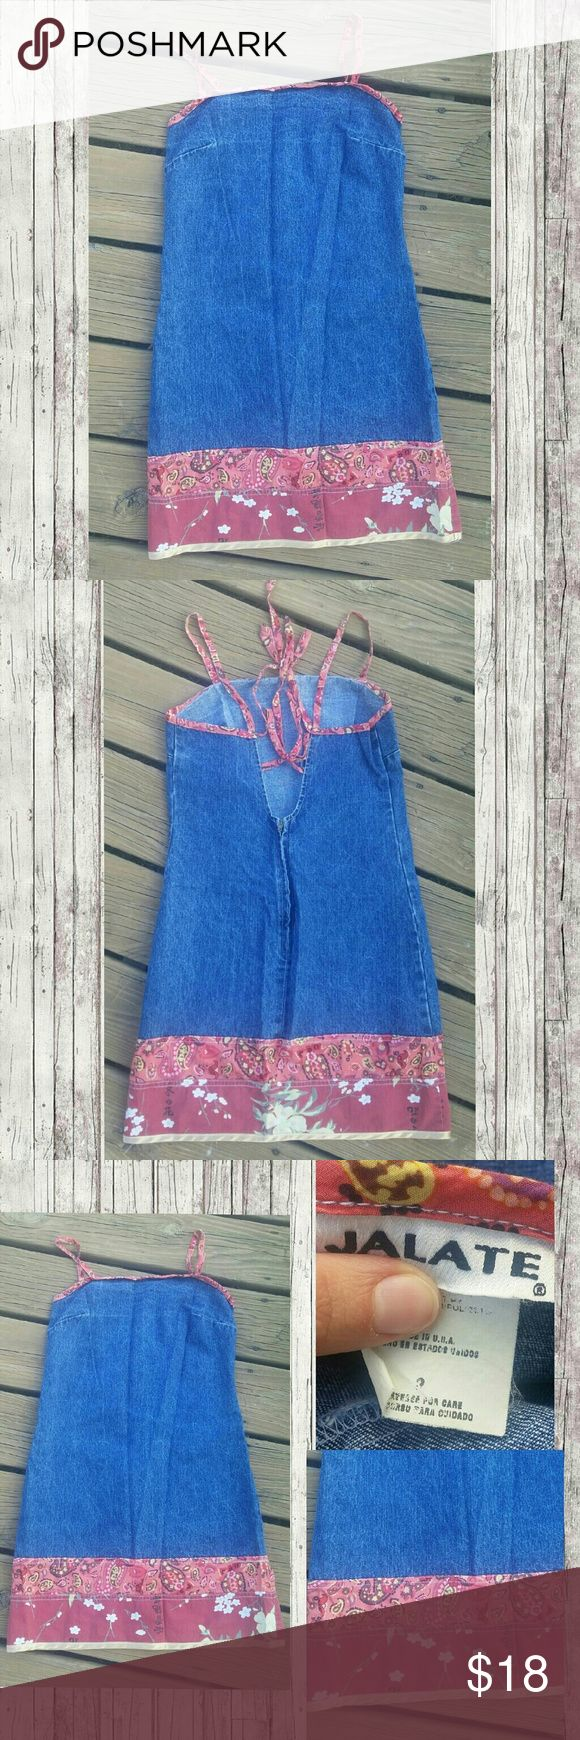 Vintage Denim Dress Cute Open Back denim Dress ties & Zips up back zipper works fine.  Excellent Vintage Condition Cotton/polyester Material  Size 3 Measures Laying Flat - Length 27.5'  across Chest 14.5'  Have any questions feel free to ask   Ships Same/Next day Mon-Fri  No trades  Bundle 2 items & Save 10% Vintage Dresses